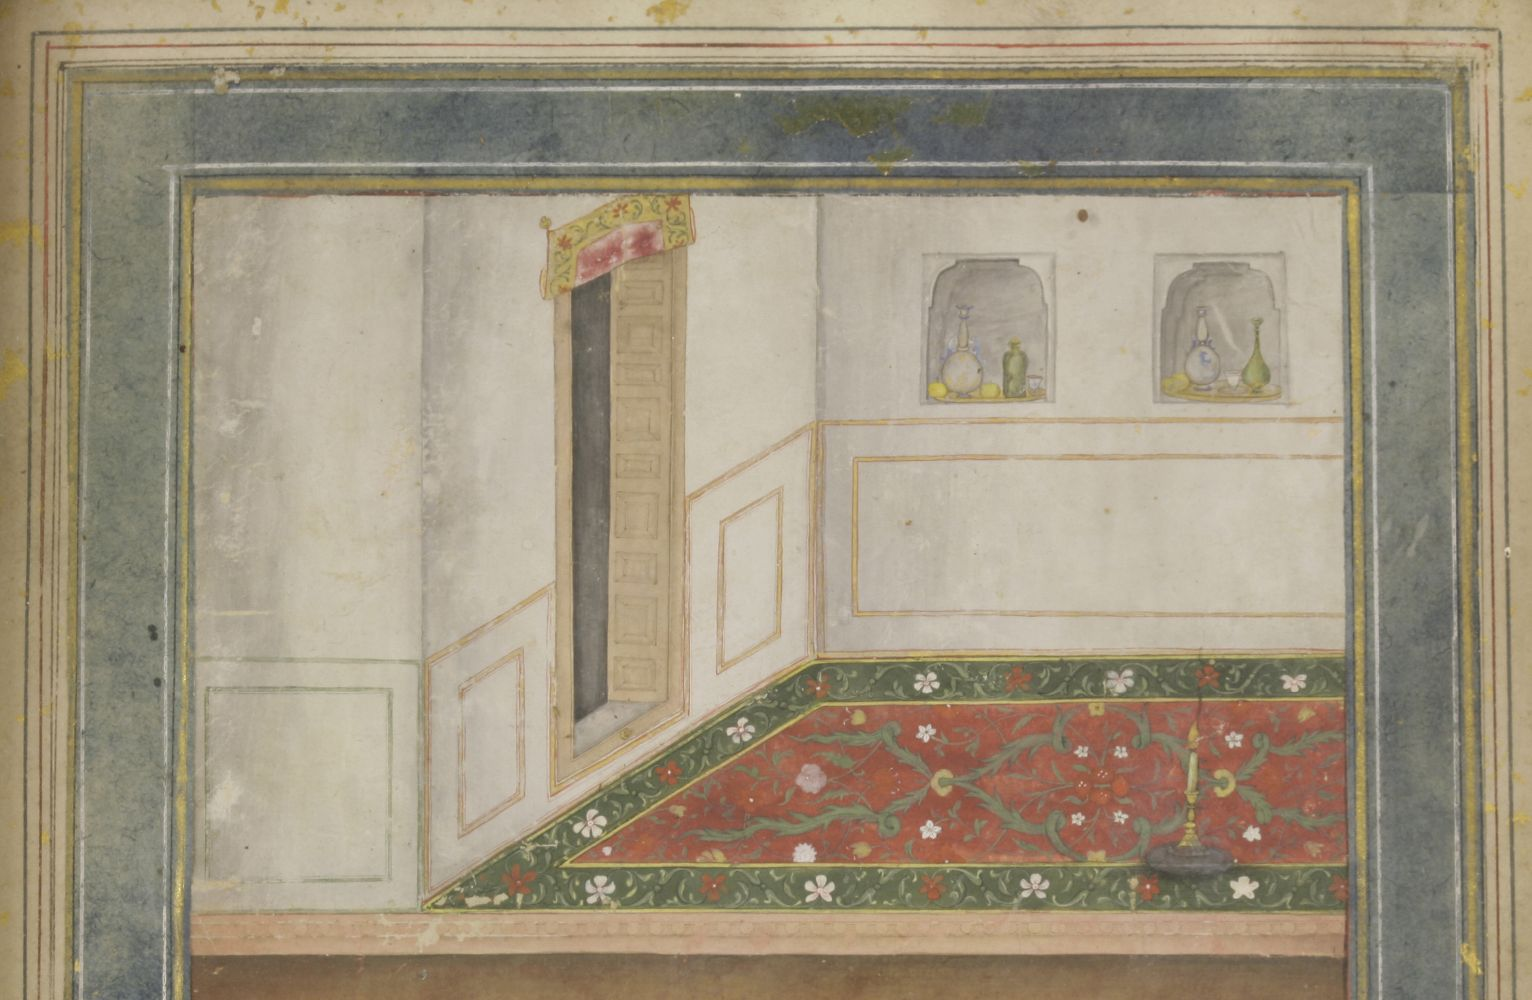 Lot 272 - 'Shah Jahan in the Time of Youth' ascribed to GovardhanIndia, Mughal, c.1630-1640opaque